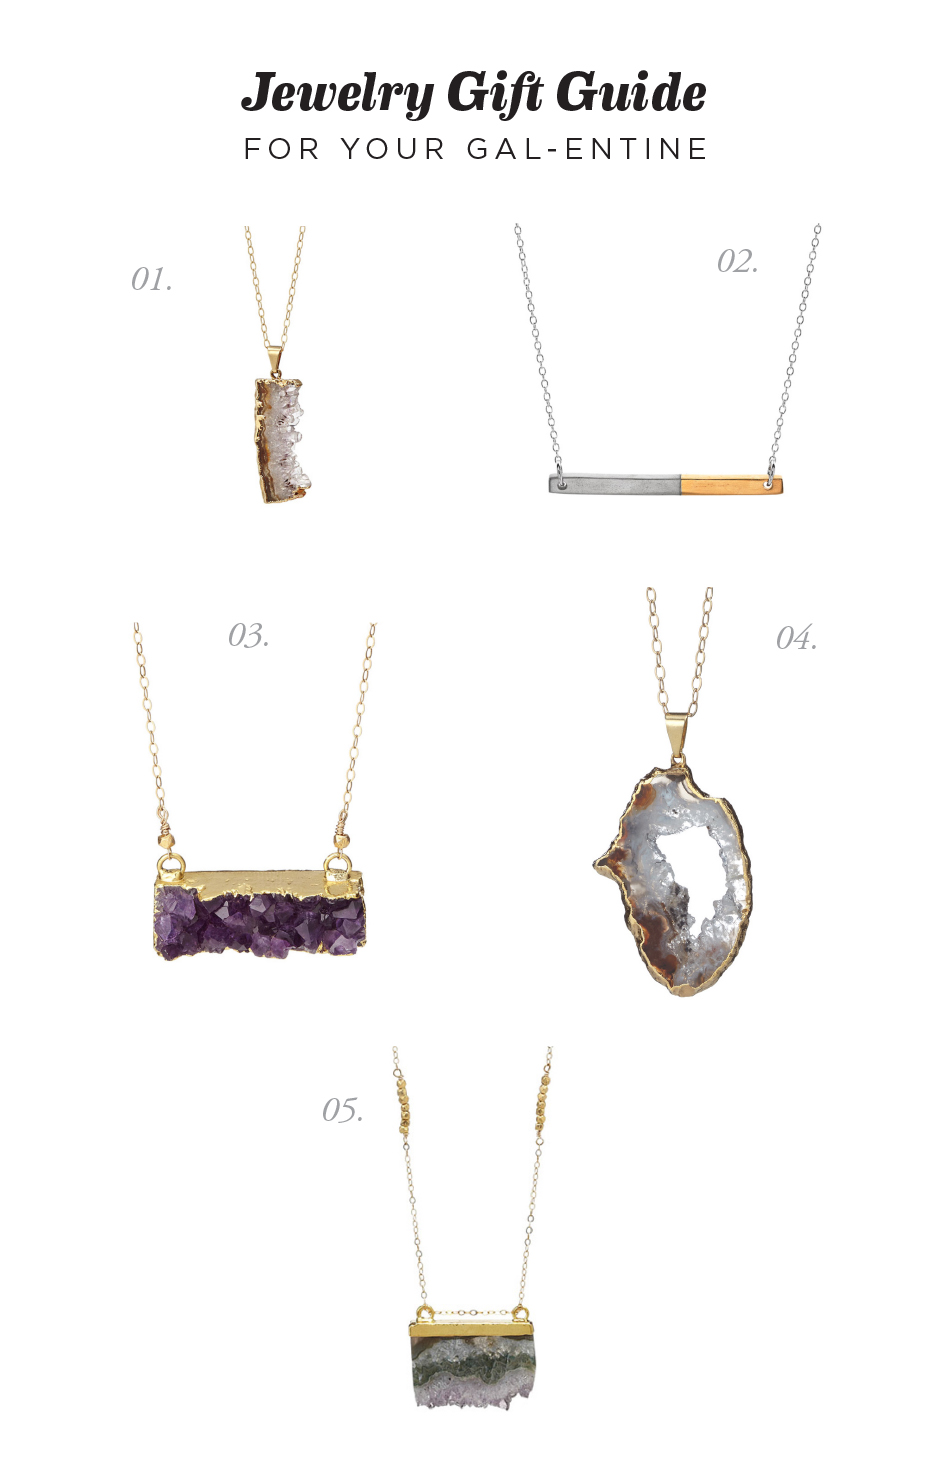 uncommon_goods_valentines_gift_guide_jewelry